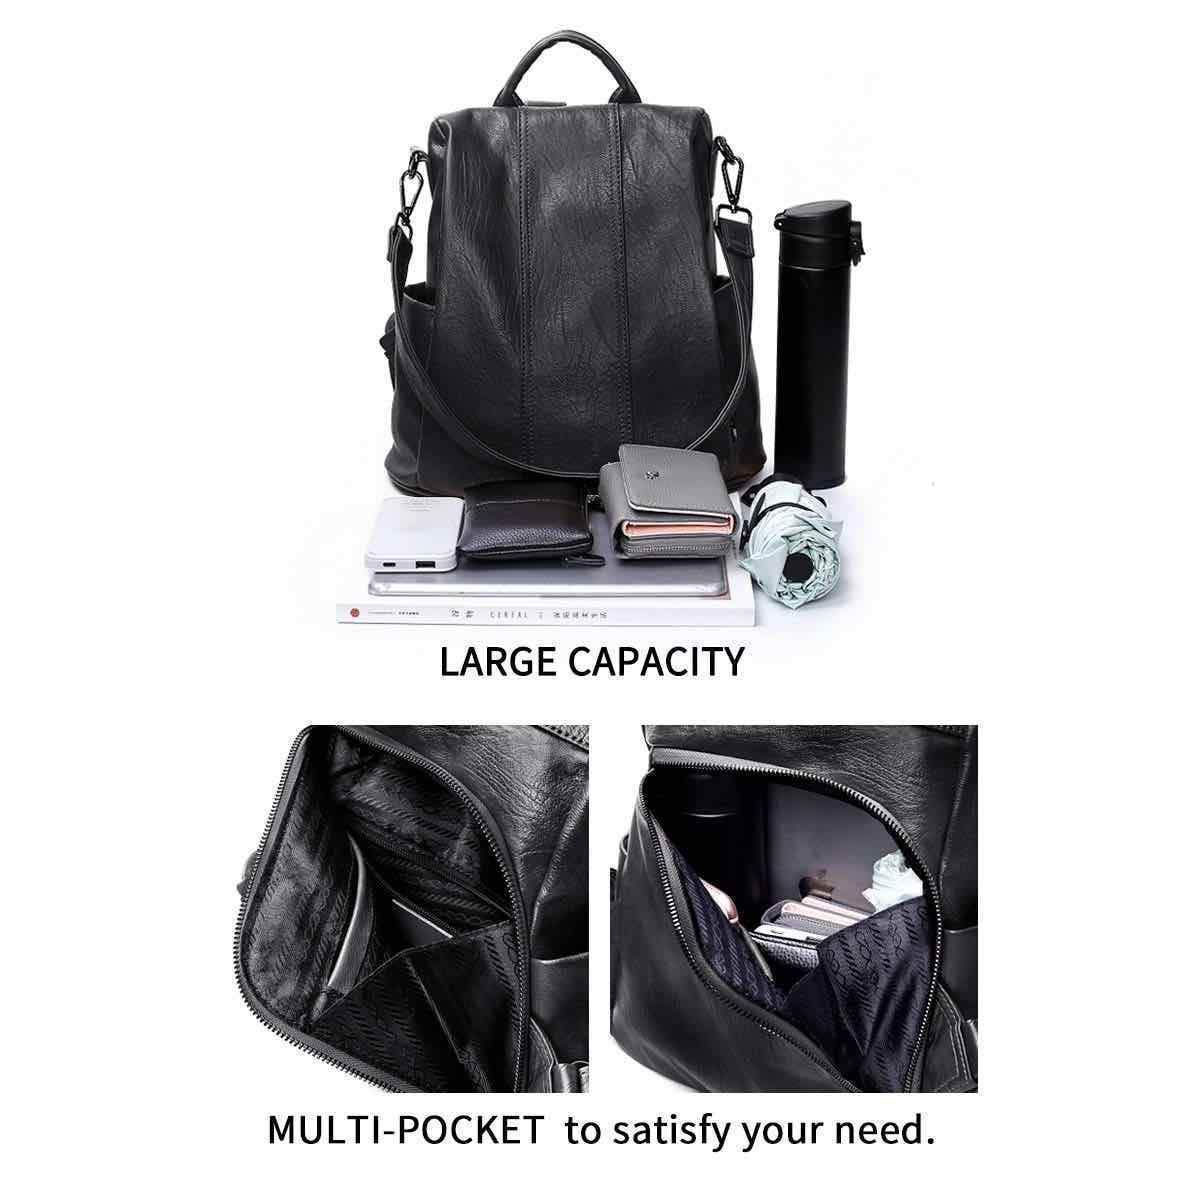 Anti-Theft Backpack-Shoulder Bag with Extra Large Capacity